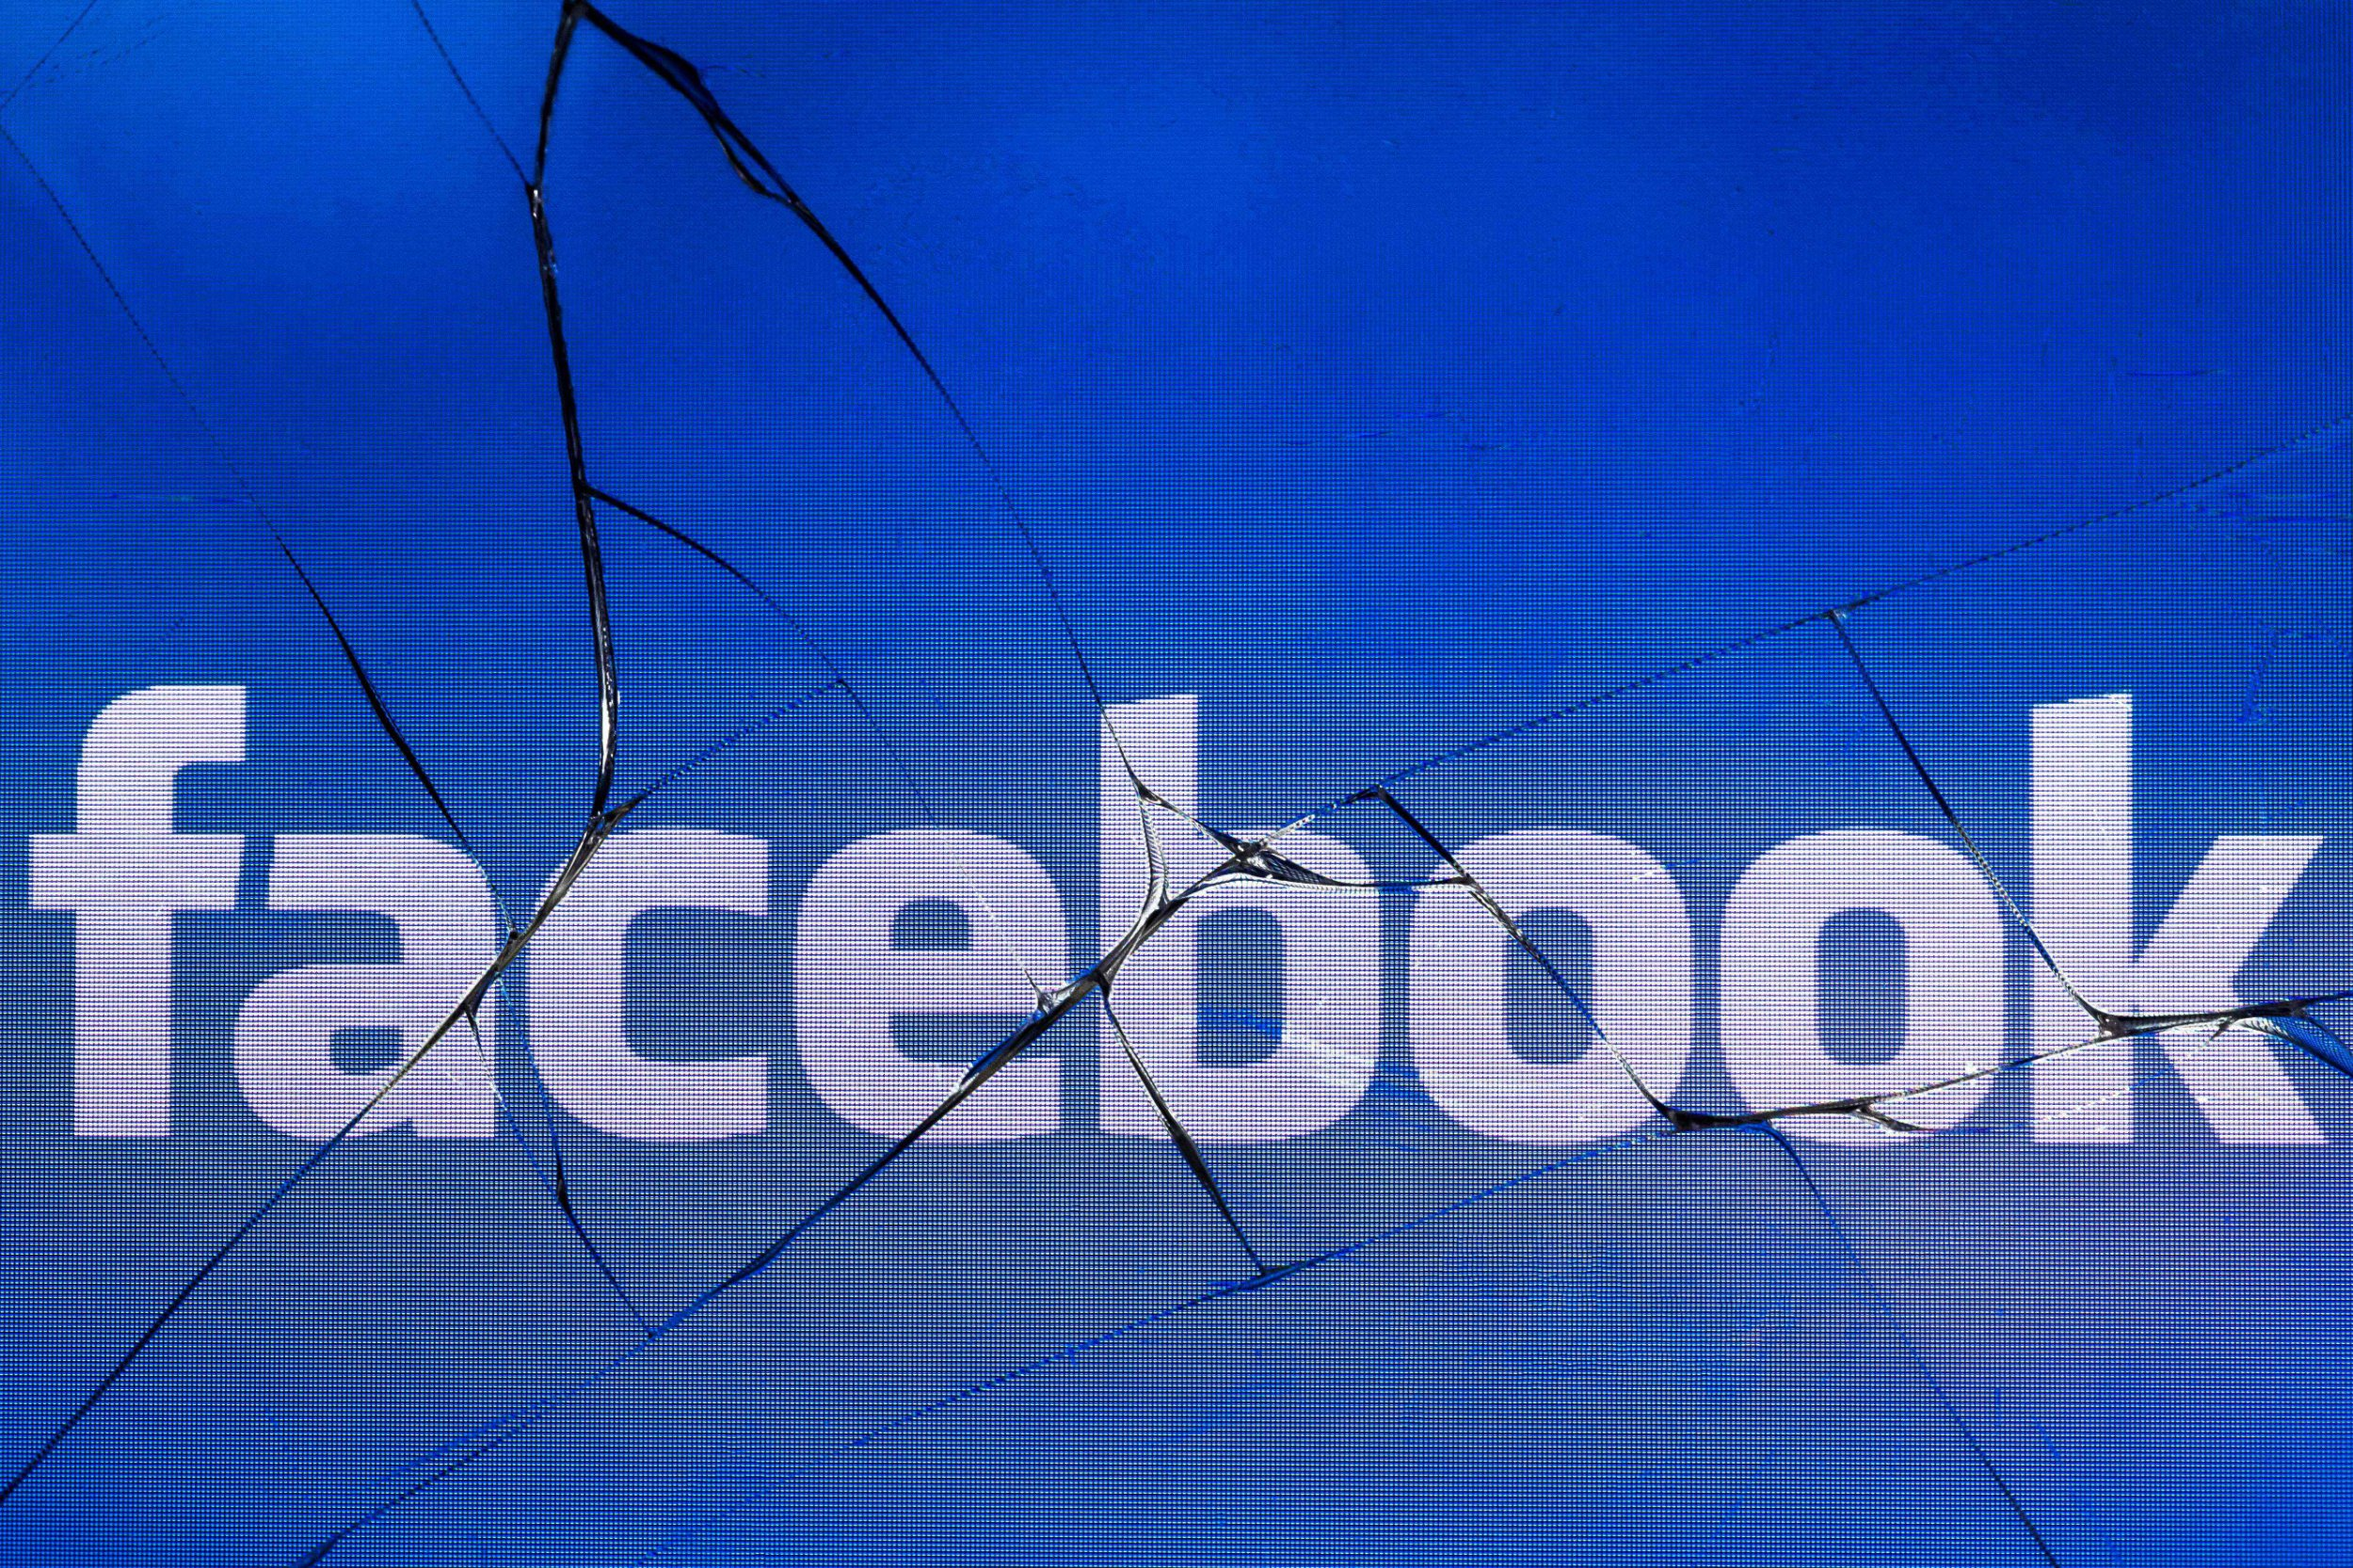 """(FILES) In this file photo taken on May 16, 2018 in Paris shows the logo of the social network Facebook on a broken screen of a mobile phone. Facebook said Tuesday it had shut down more than 30 fake pages and accounts involved in what appeared to be a """"coordinated"""" attempt to sway public opinion on political issues ahead of November midterm elections, but cannot identify the source. / AFP PHOTO / JOEL SAGETJOEL SAGET/AFP/Getty Images"""